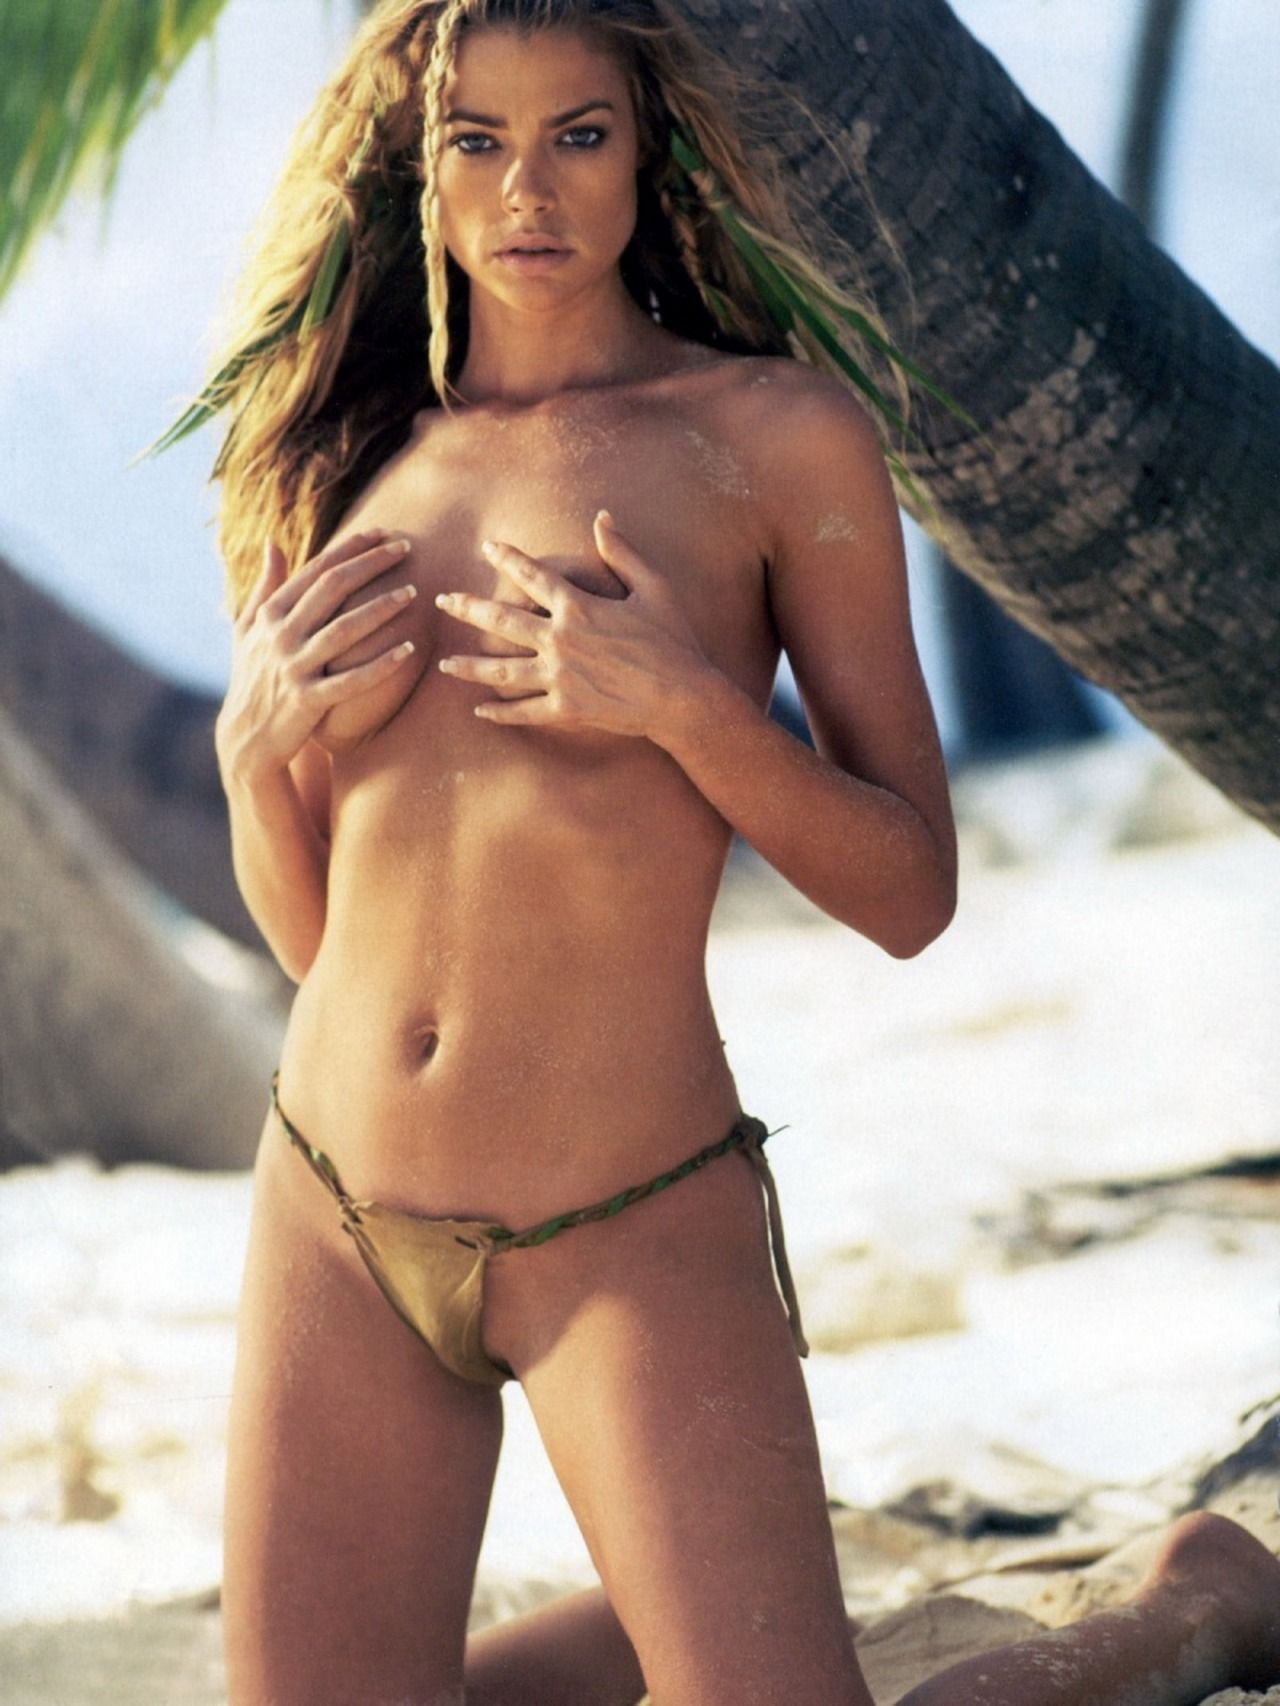 Denise richards nude beach